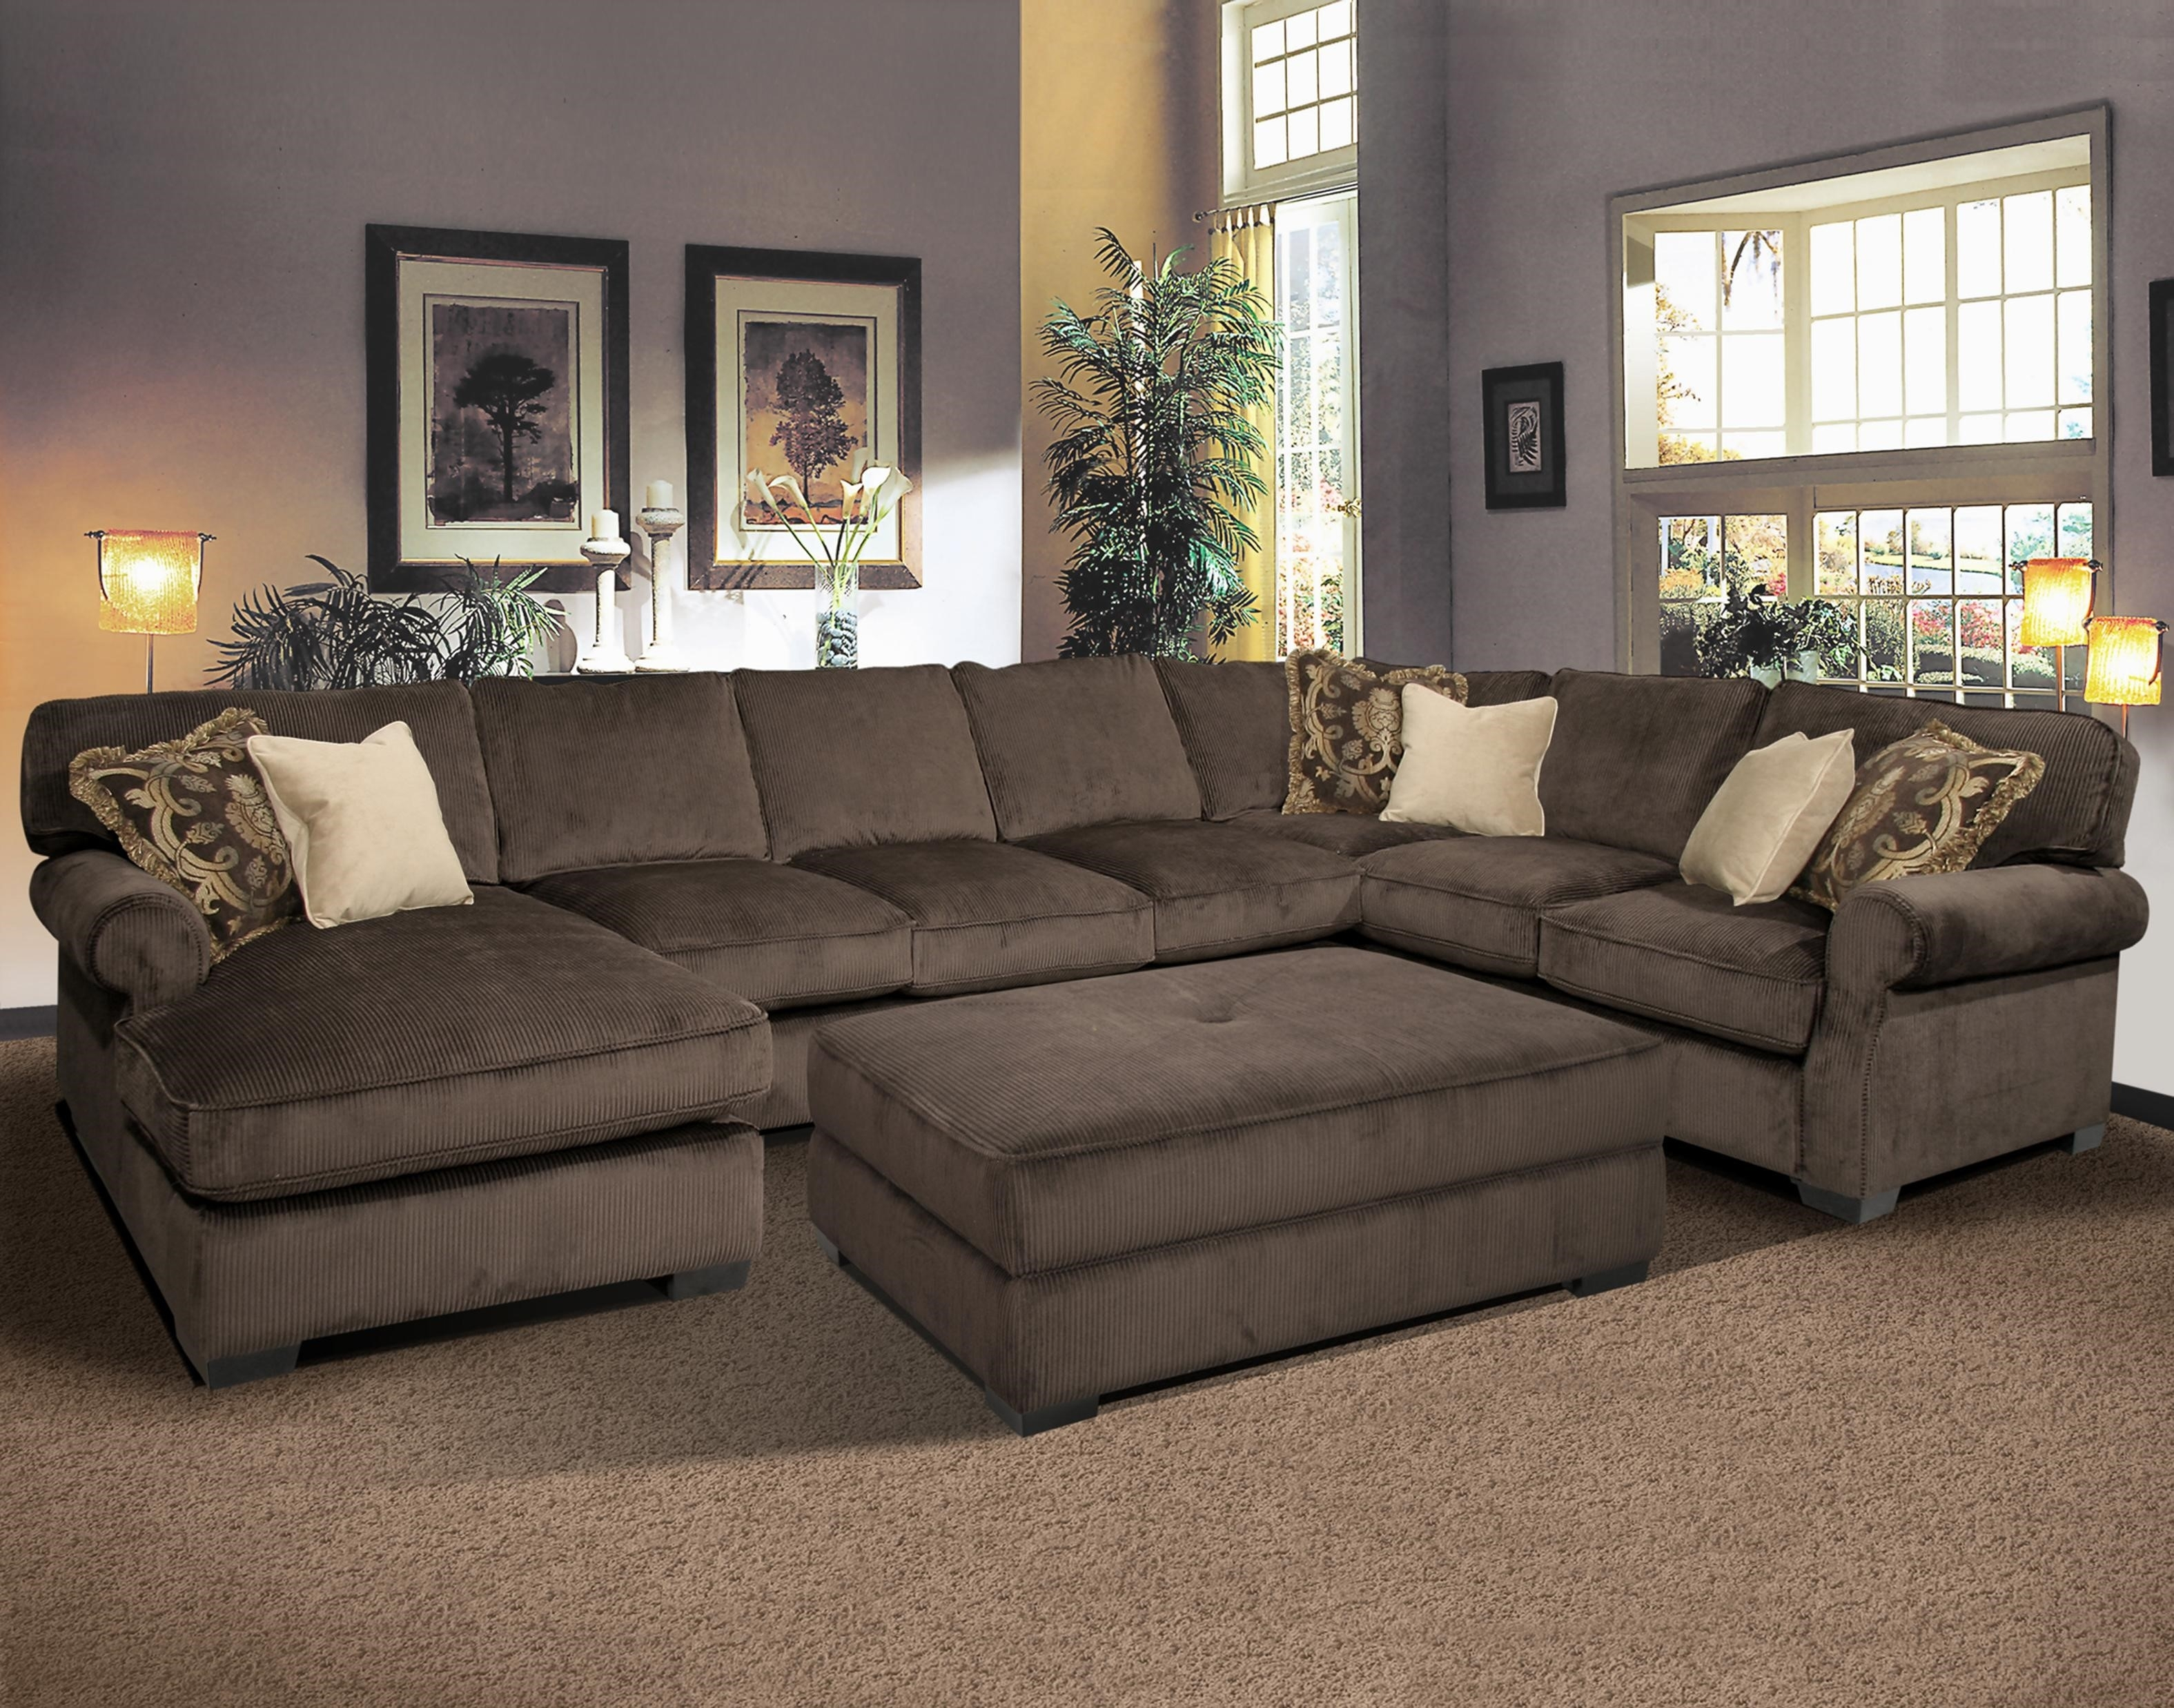 Modular Sectional Sofas Sofa For Small Spaces On Sale Uk Stock For Sectional Sofas At Calgary (View 11 of 15)